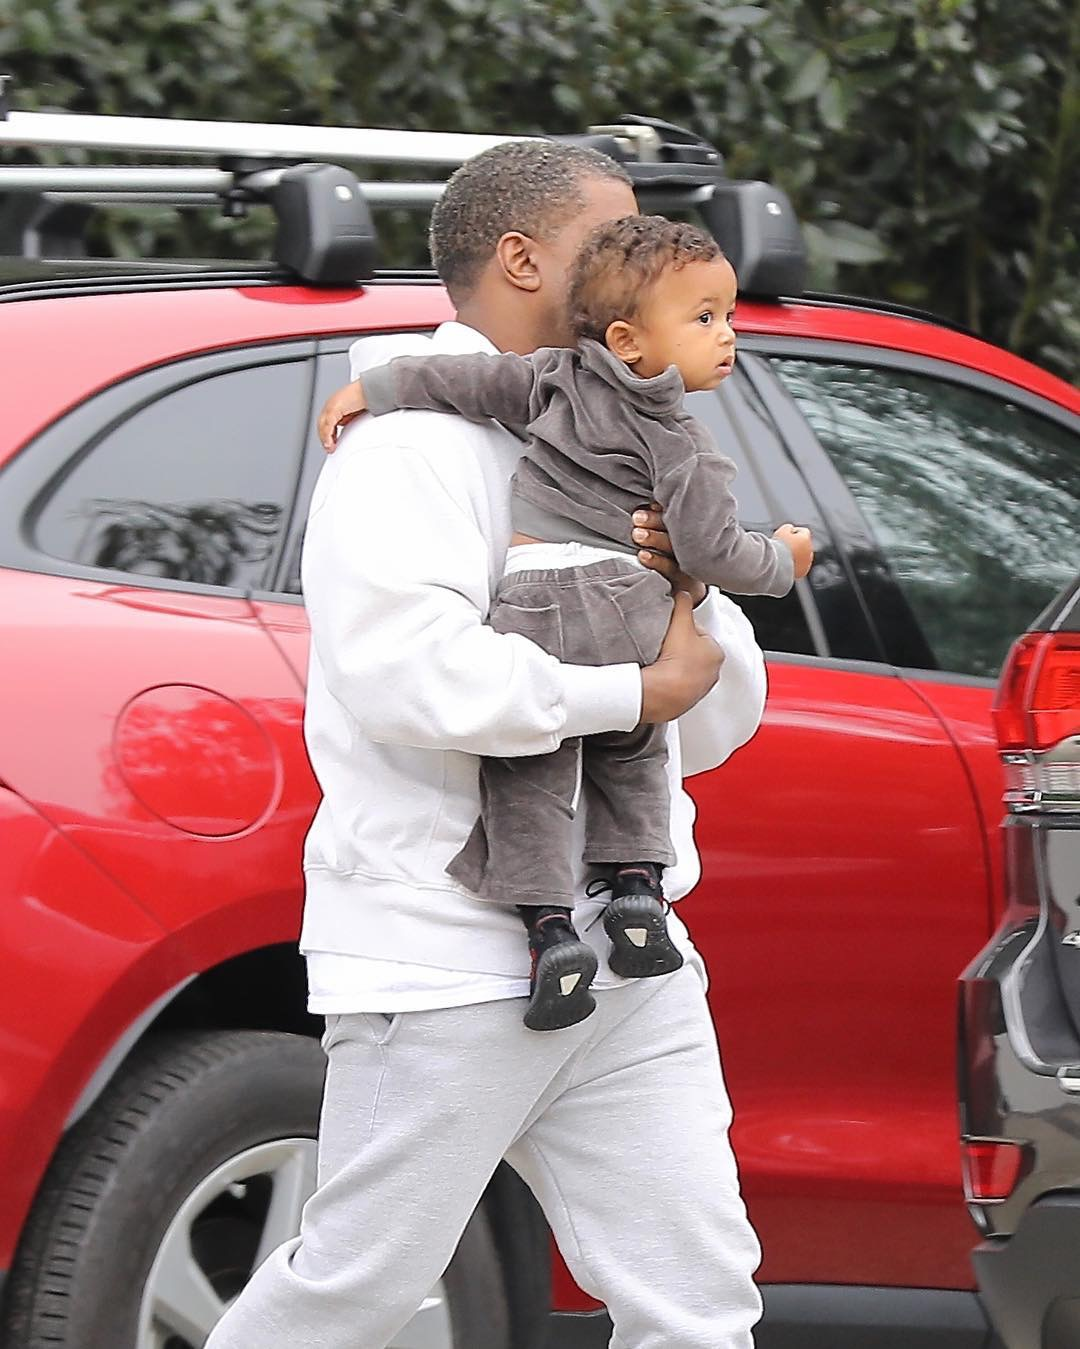 SPOTTED: Kanye West Wearing Champion Joggers and Yeezy Season Calabasas Sneakers